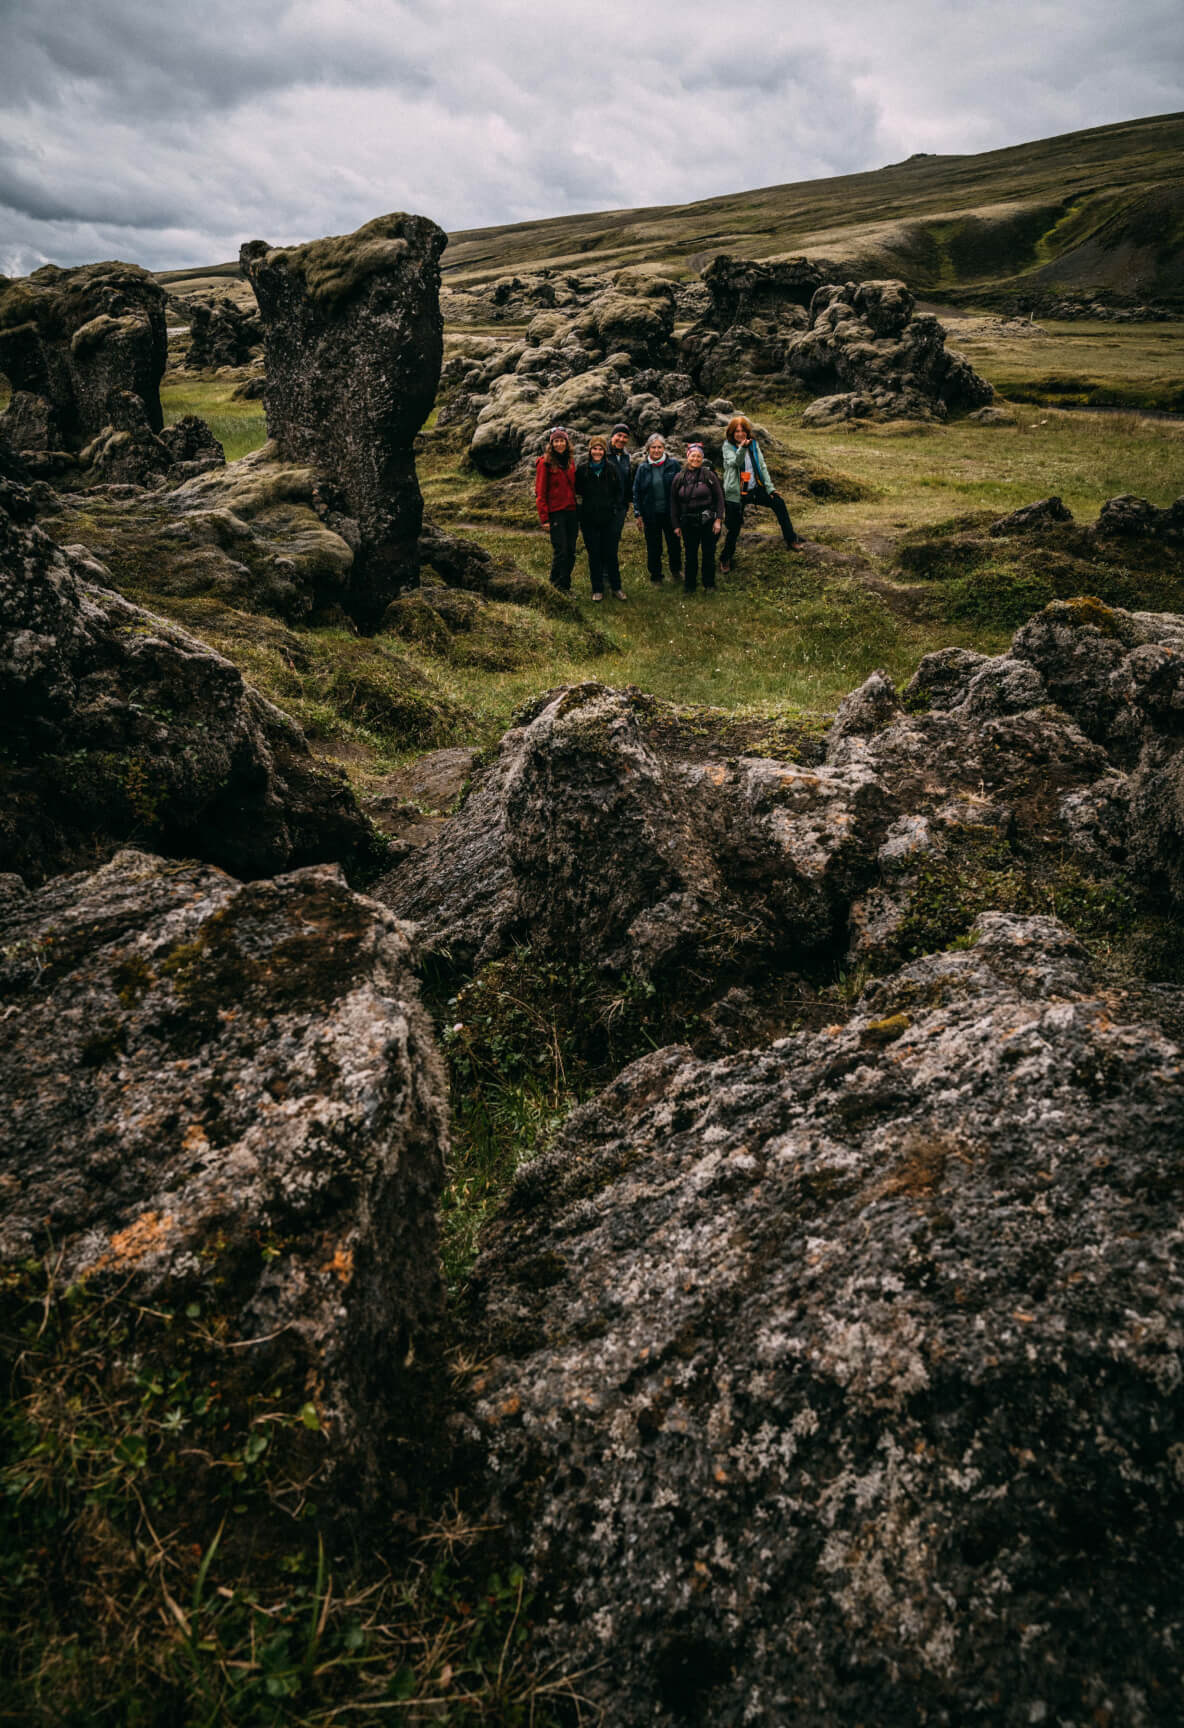 Skaelingar and its rocks is one of the most peculiar spots on this Iceland adventure.